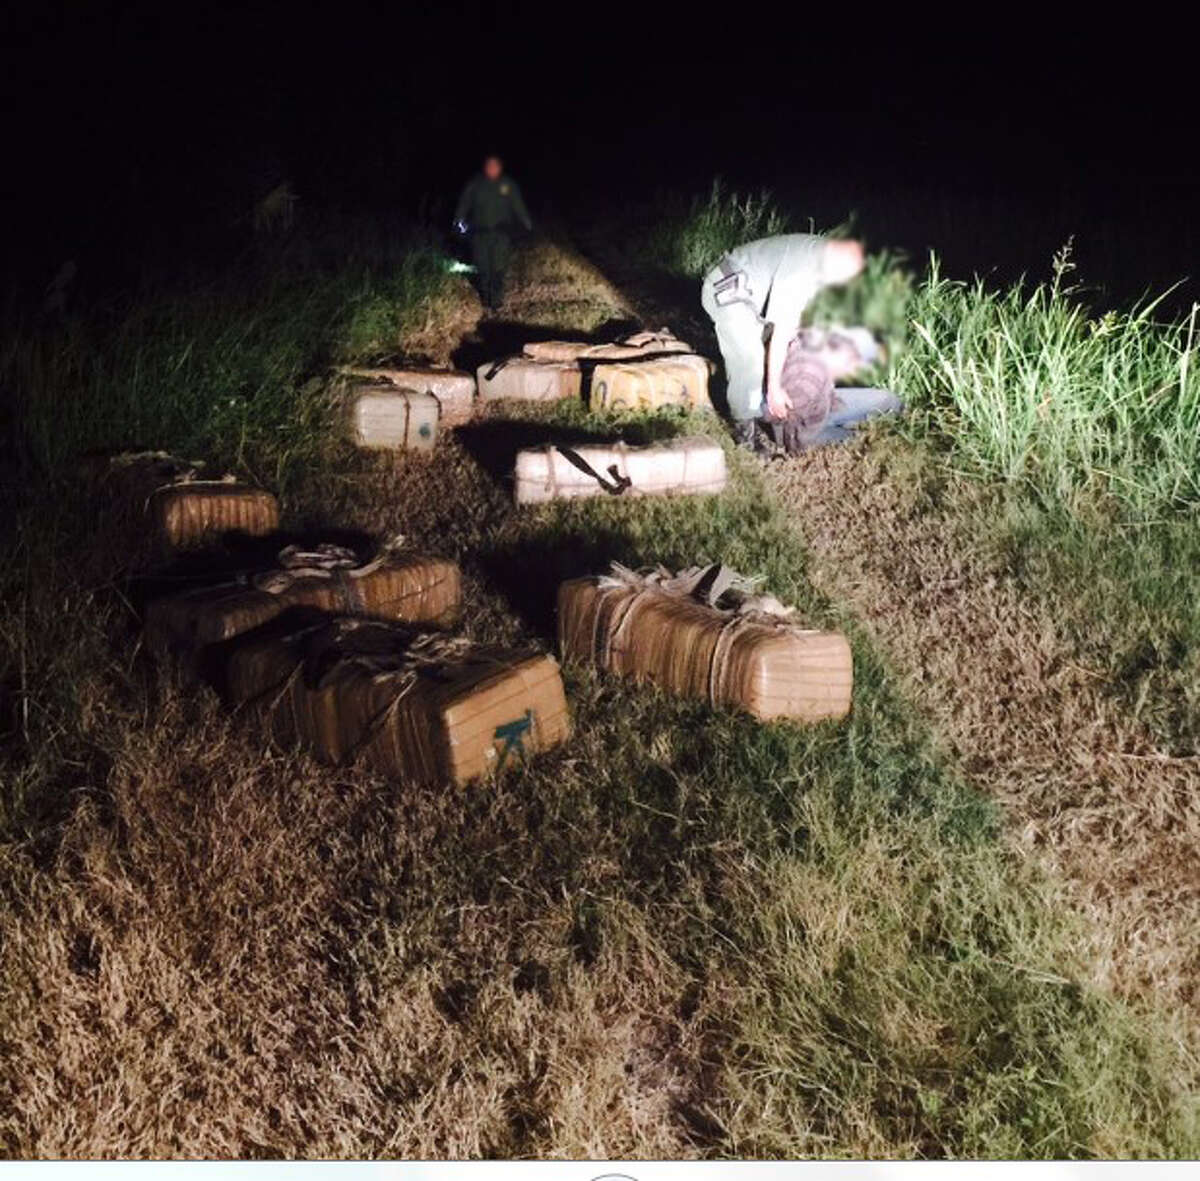 U.S. Border Patrol agents arrested several suspected drug smugglers and seized more than 1,100 pounds of marijuana on Aug. 7, 2015 near Santa Maria.